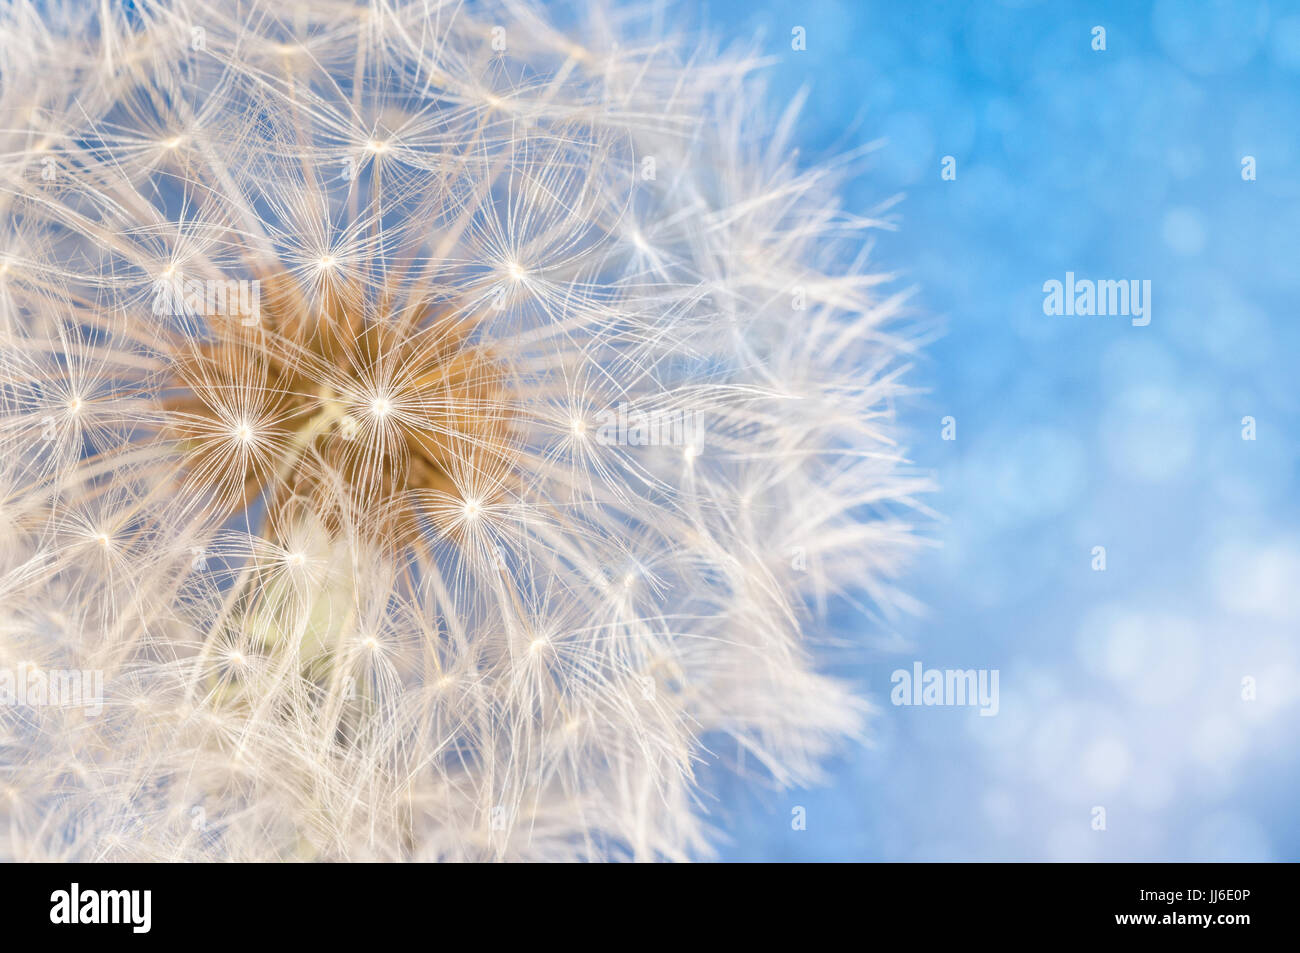 Dandelion flower with seeds ball close up in blue bright bokeh background - Stock Image